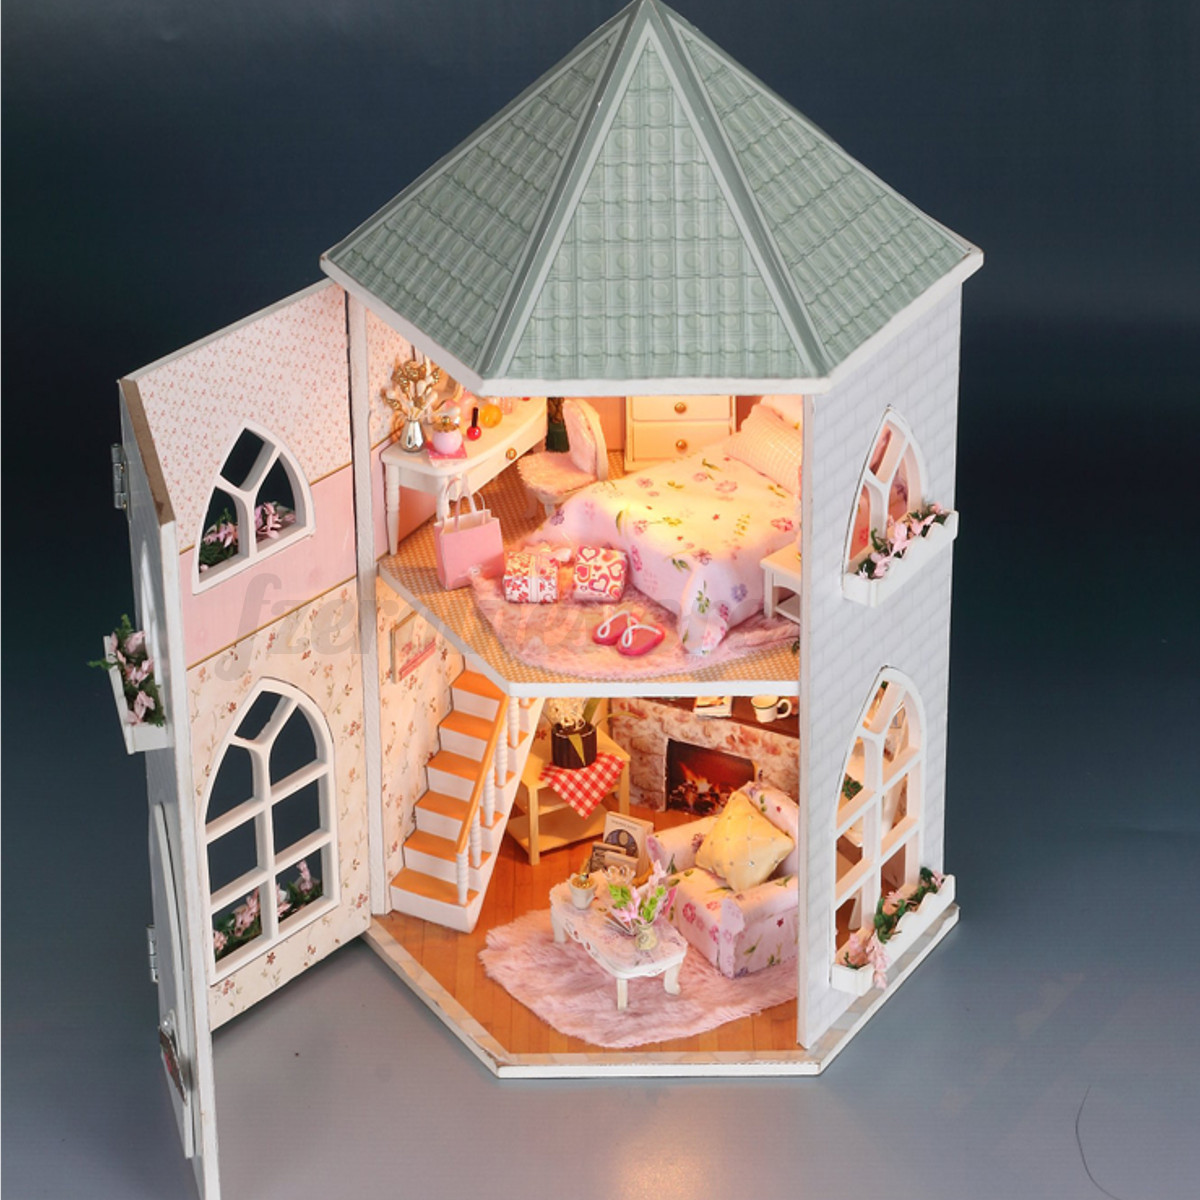 liebe schloss puppenhaus prinzessin zimmer diy dollhouse kit mit led beleuchtung ebay. Black Bedroom Furniture Sets. Home Design Ideas